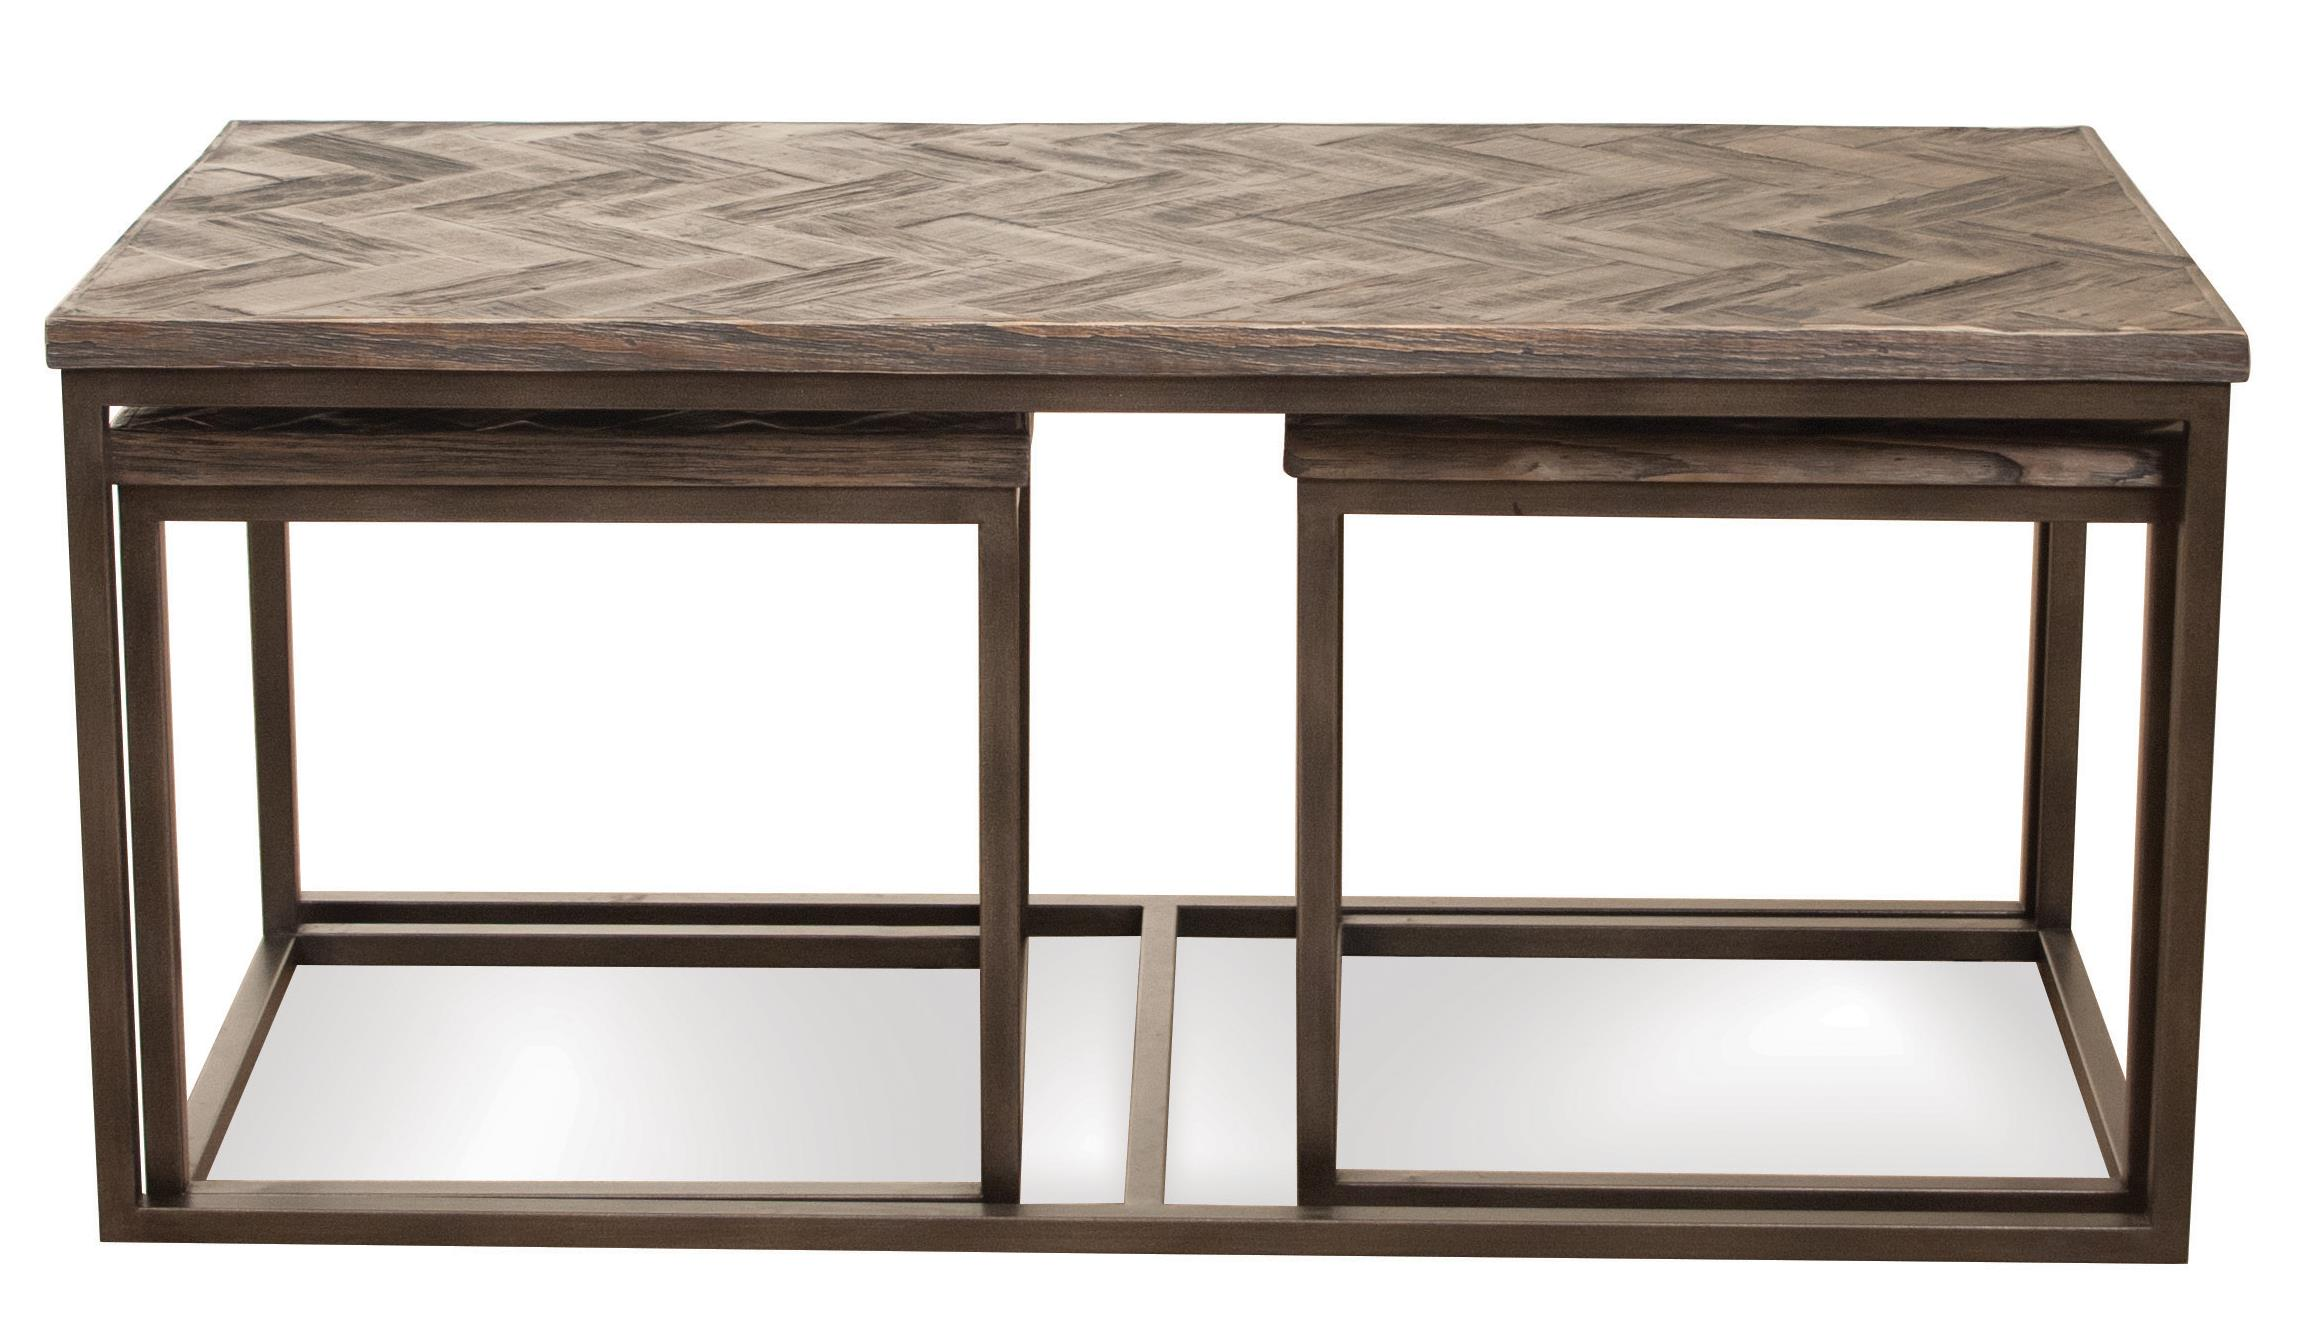 Riverside Furniture Chevron Nesting Coffee Table - Item Number: 73102